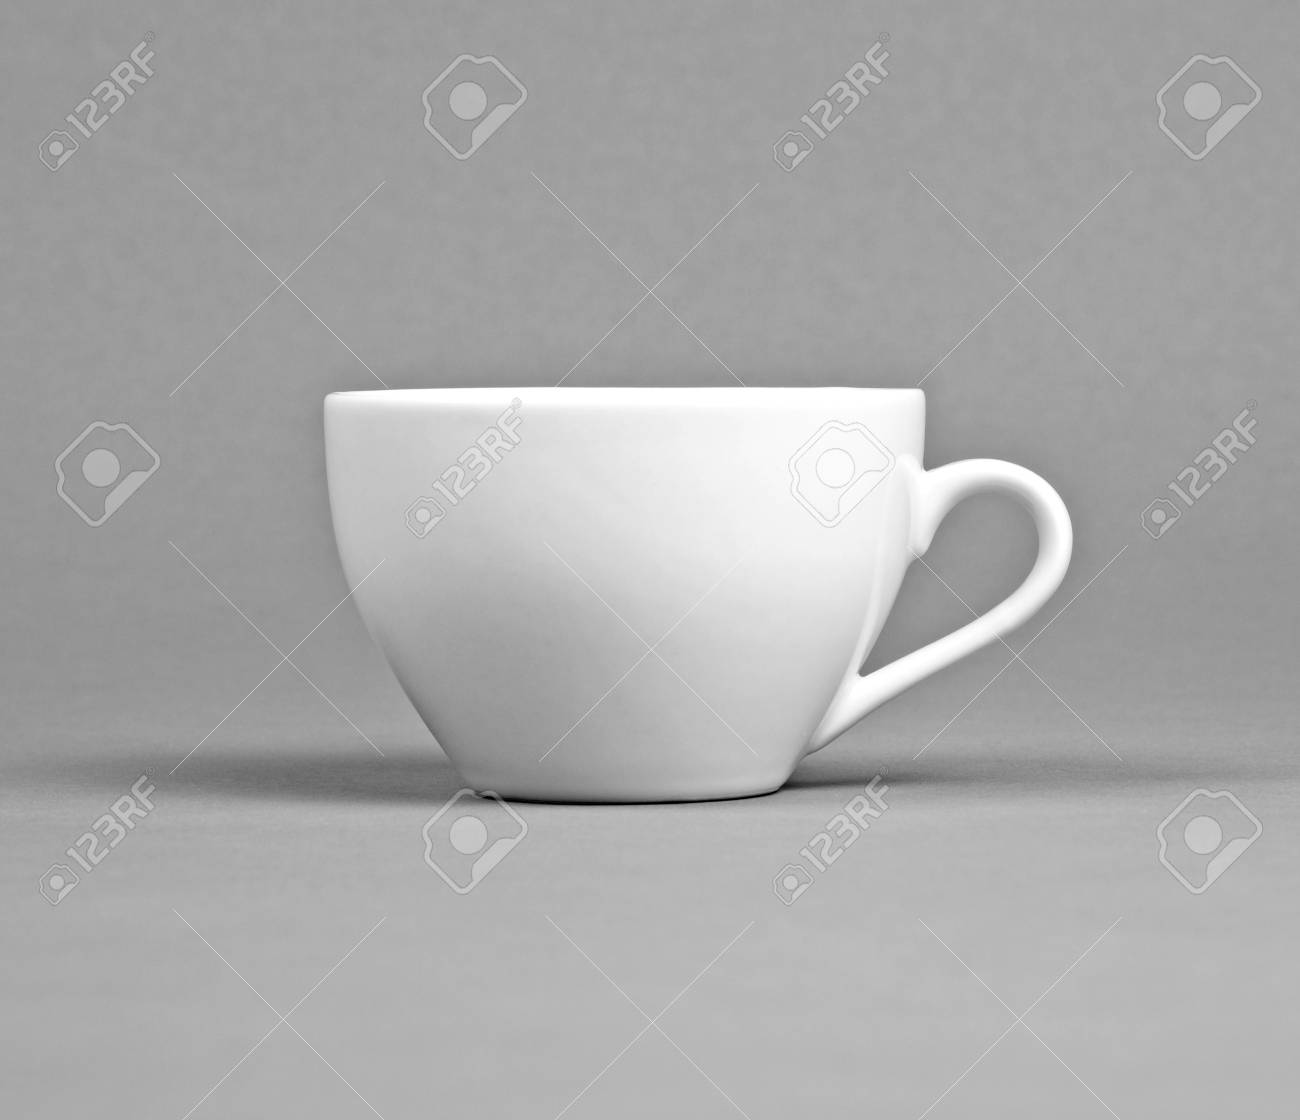 Peculiar Small Coffee Cup On A Background Stock Photo Small Coffee Cup On A Background Stock Small Coffee Cup Lid Bulk Small Coffee Cups furniture Small White Coffee Cups